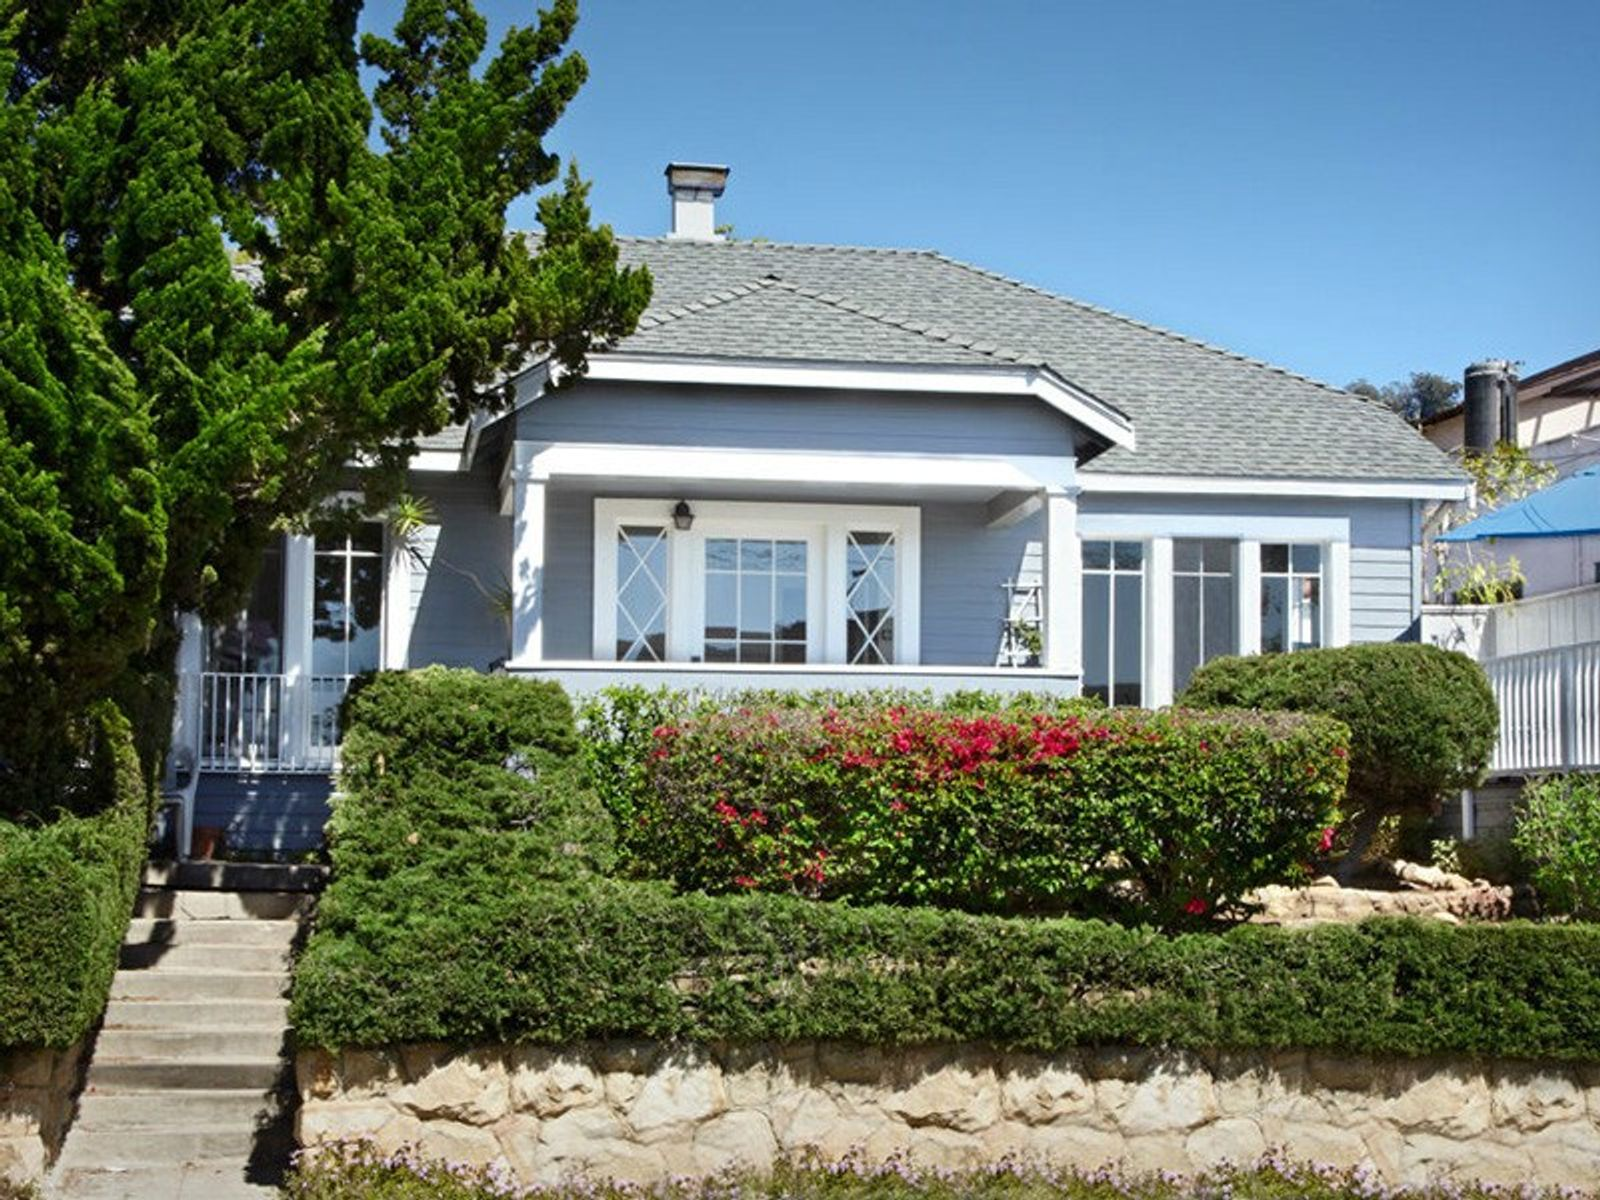 Riviera Ocean View Bungalow, Santa Barbara CA Single Family Home - Santa Barbara Real Estate